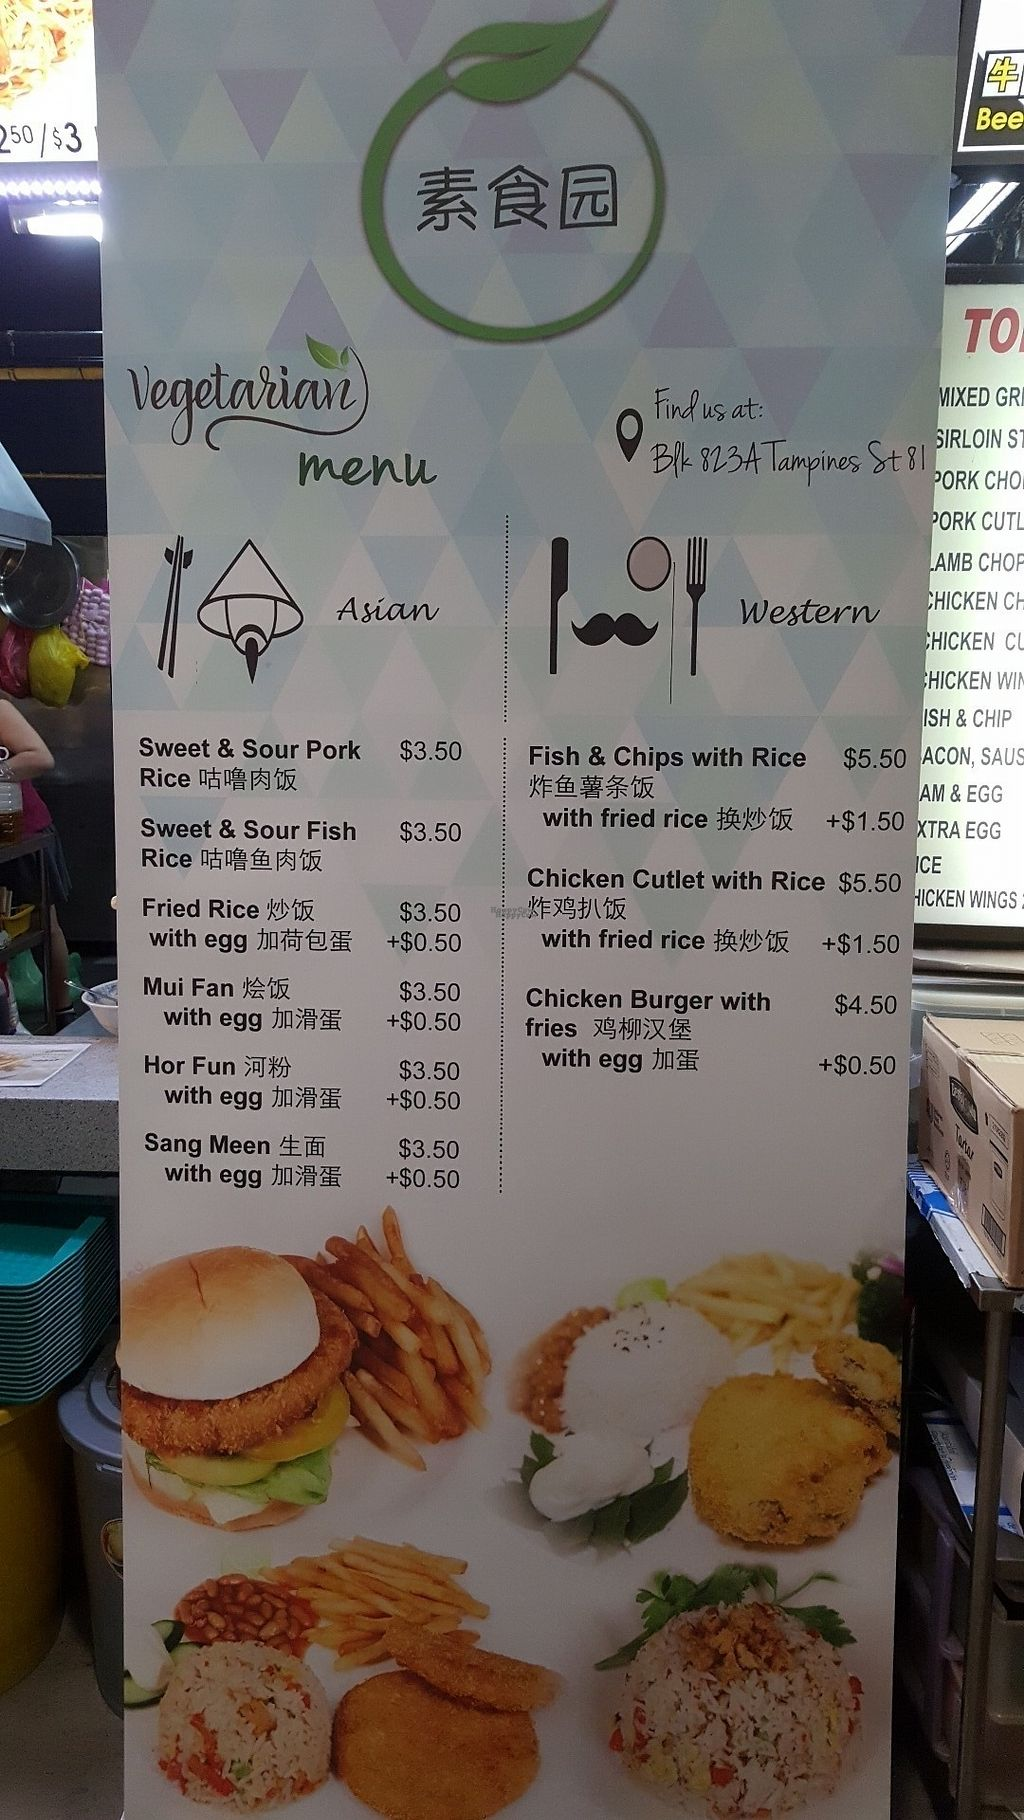 """Photo of Su Shi Yuan Vegetarian Stall   by <a href=""""/members/profile/KeithLim"""">KeithLim</a> <br/>Night menu <br/> September 25, 2016  - <a href='/contact/abuse/image/79215/177833'>Report</a>"""